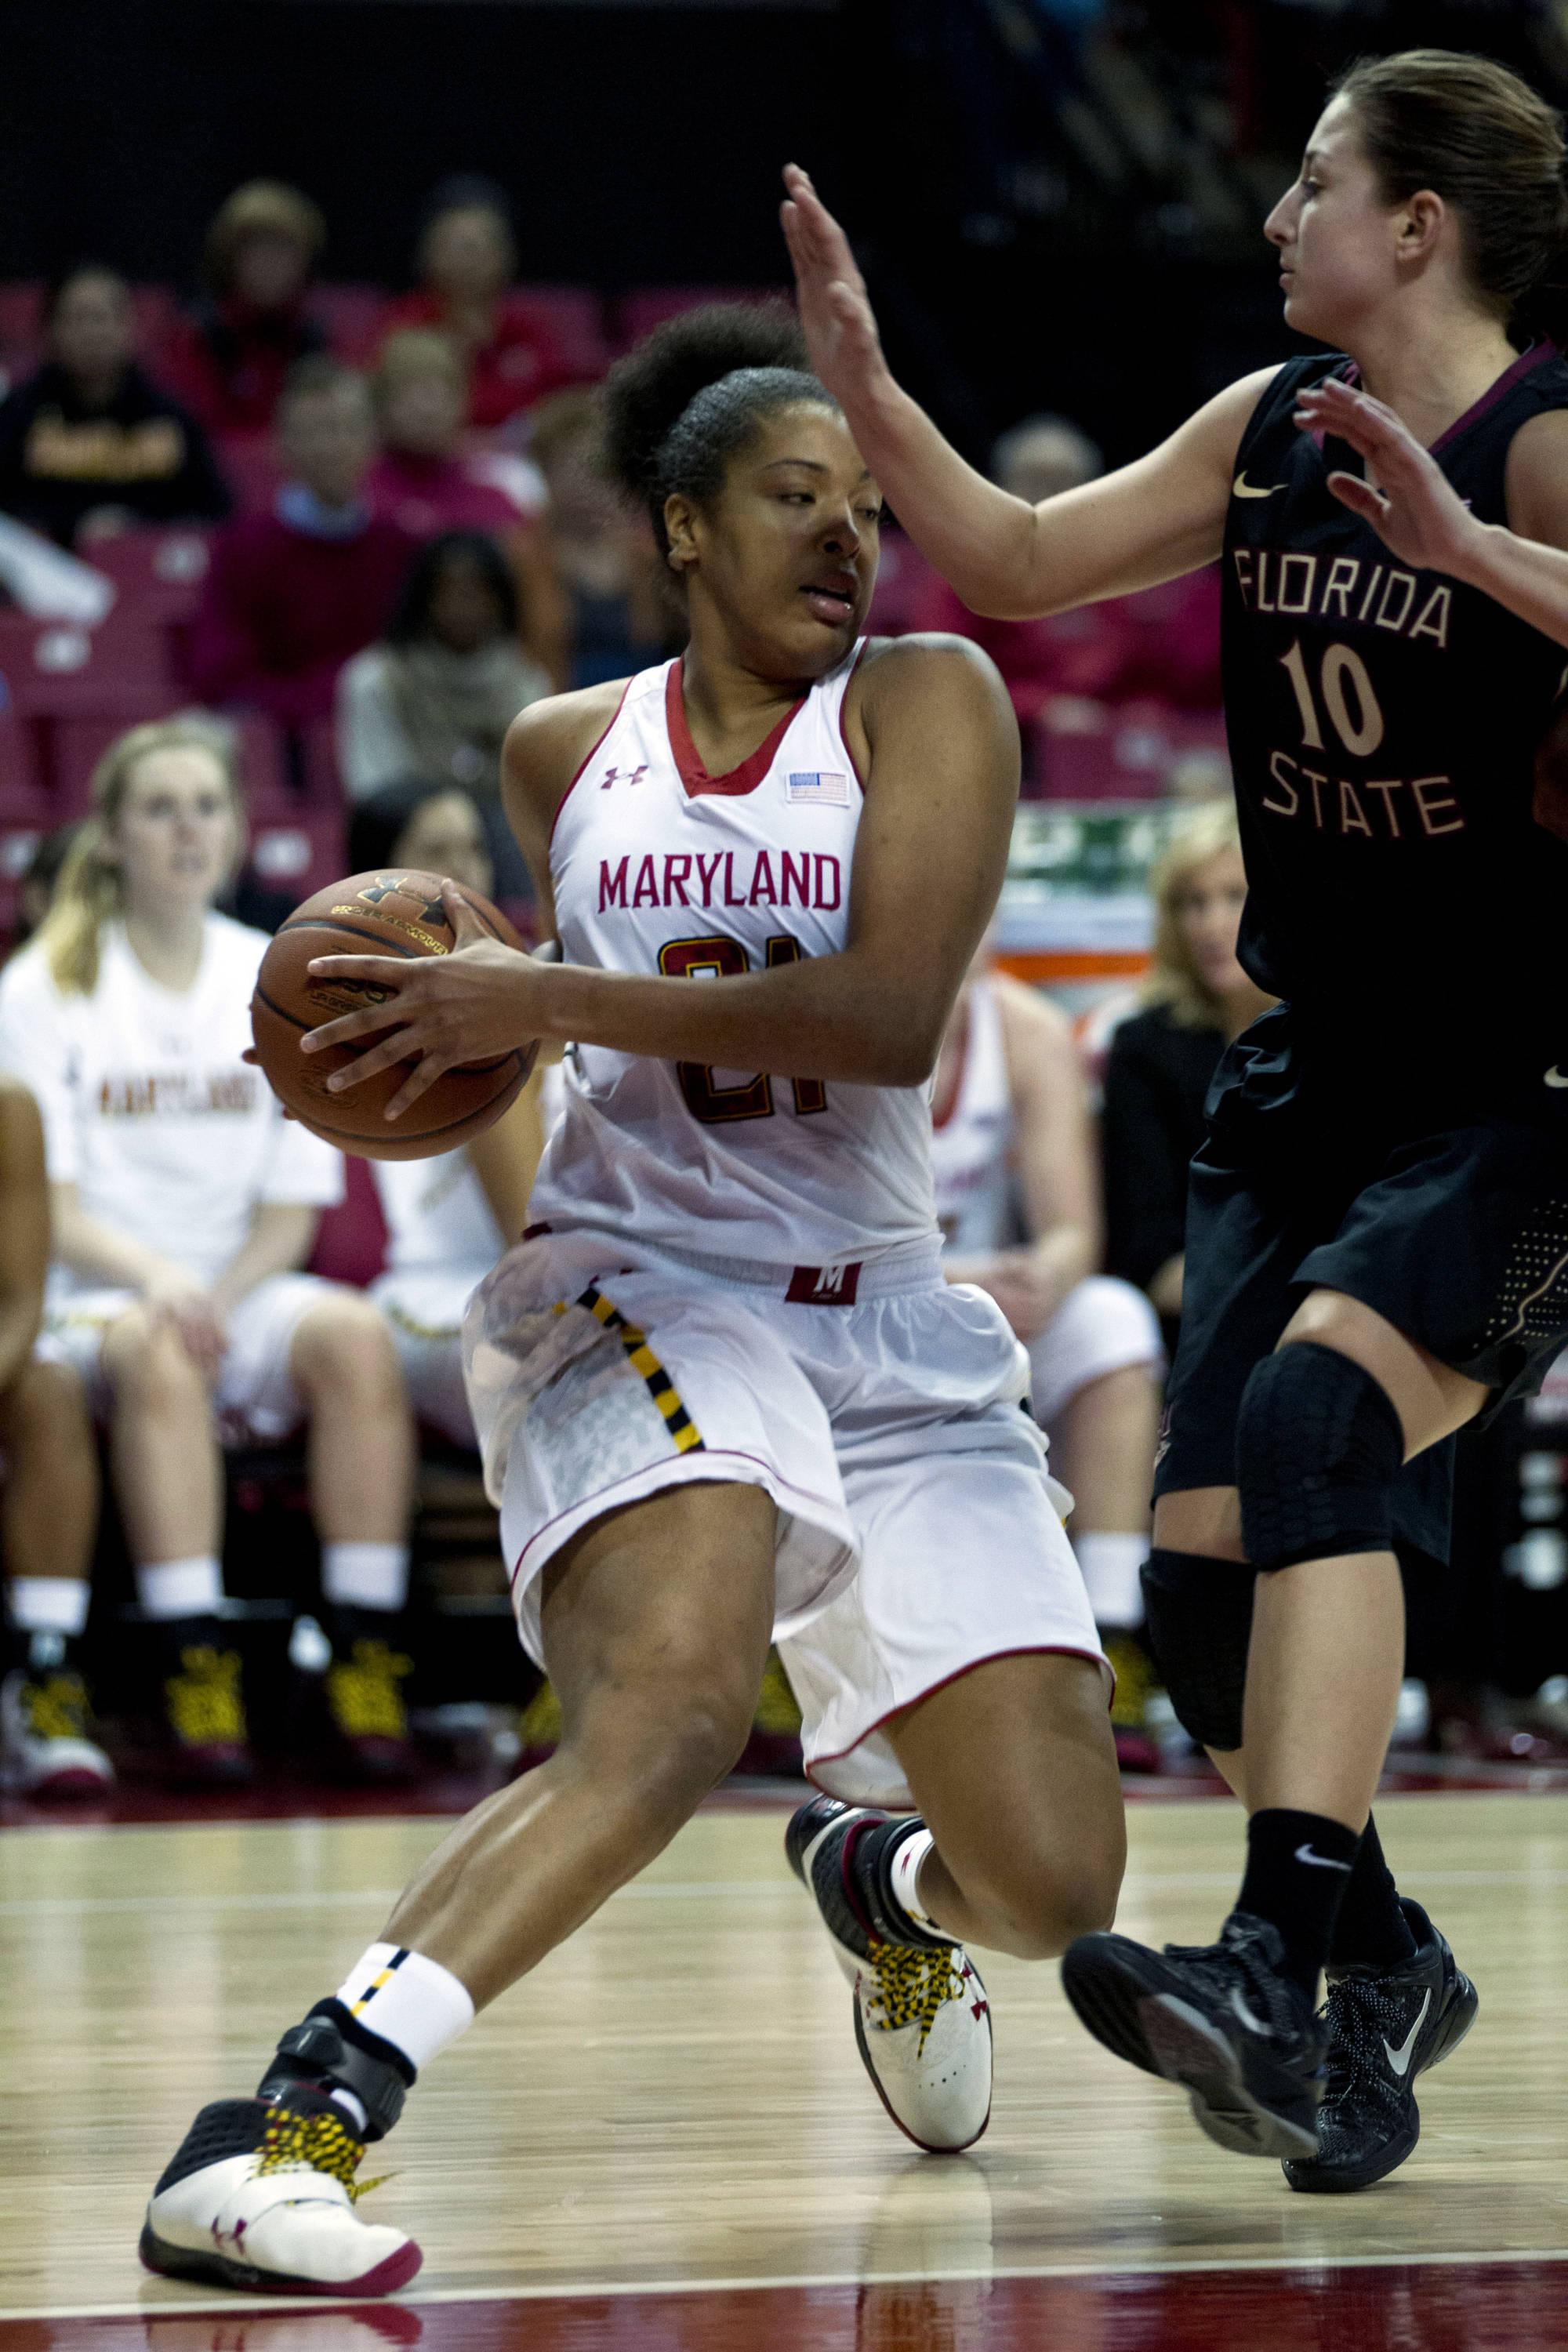 Maryland's Tianna Hawkins (21) moves the ball against Florida State's Leonor Rodriguez during the second half. (AP Photo/Jose Luis Magana)